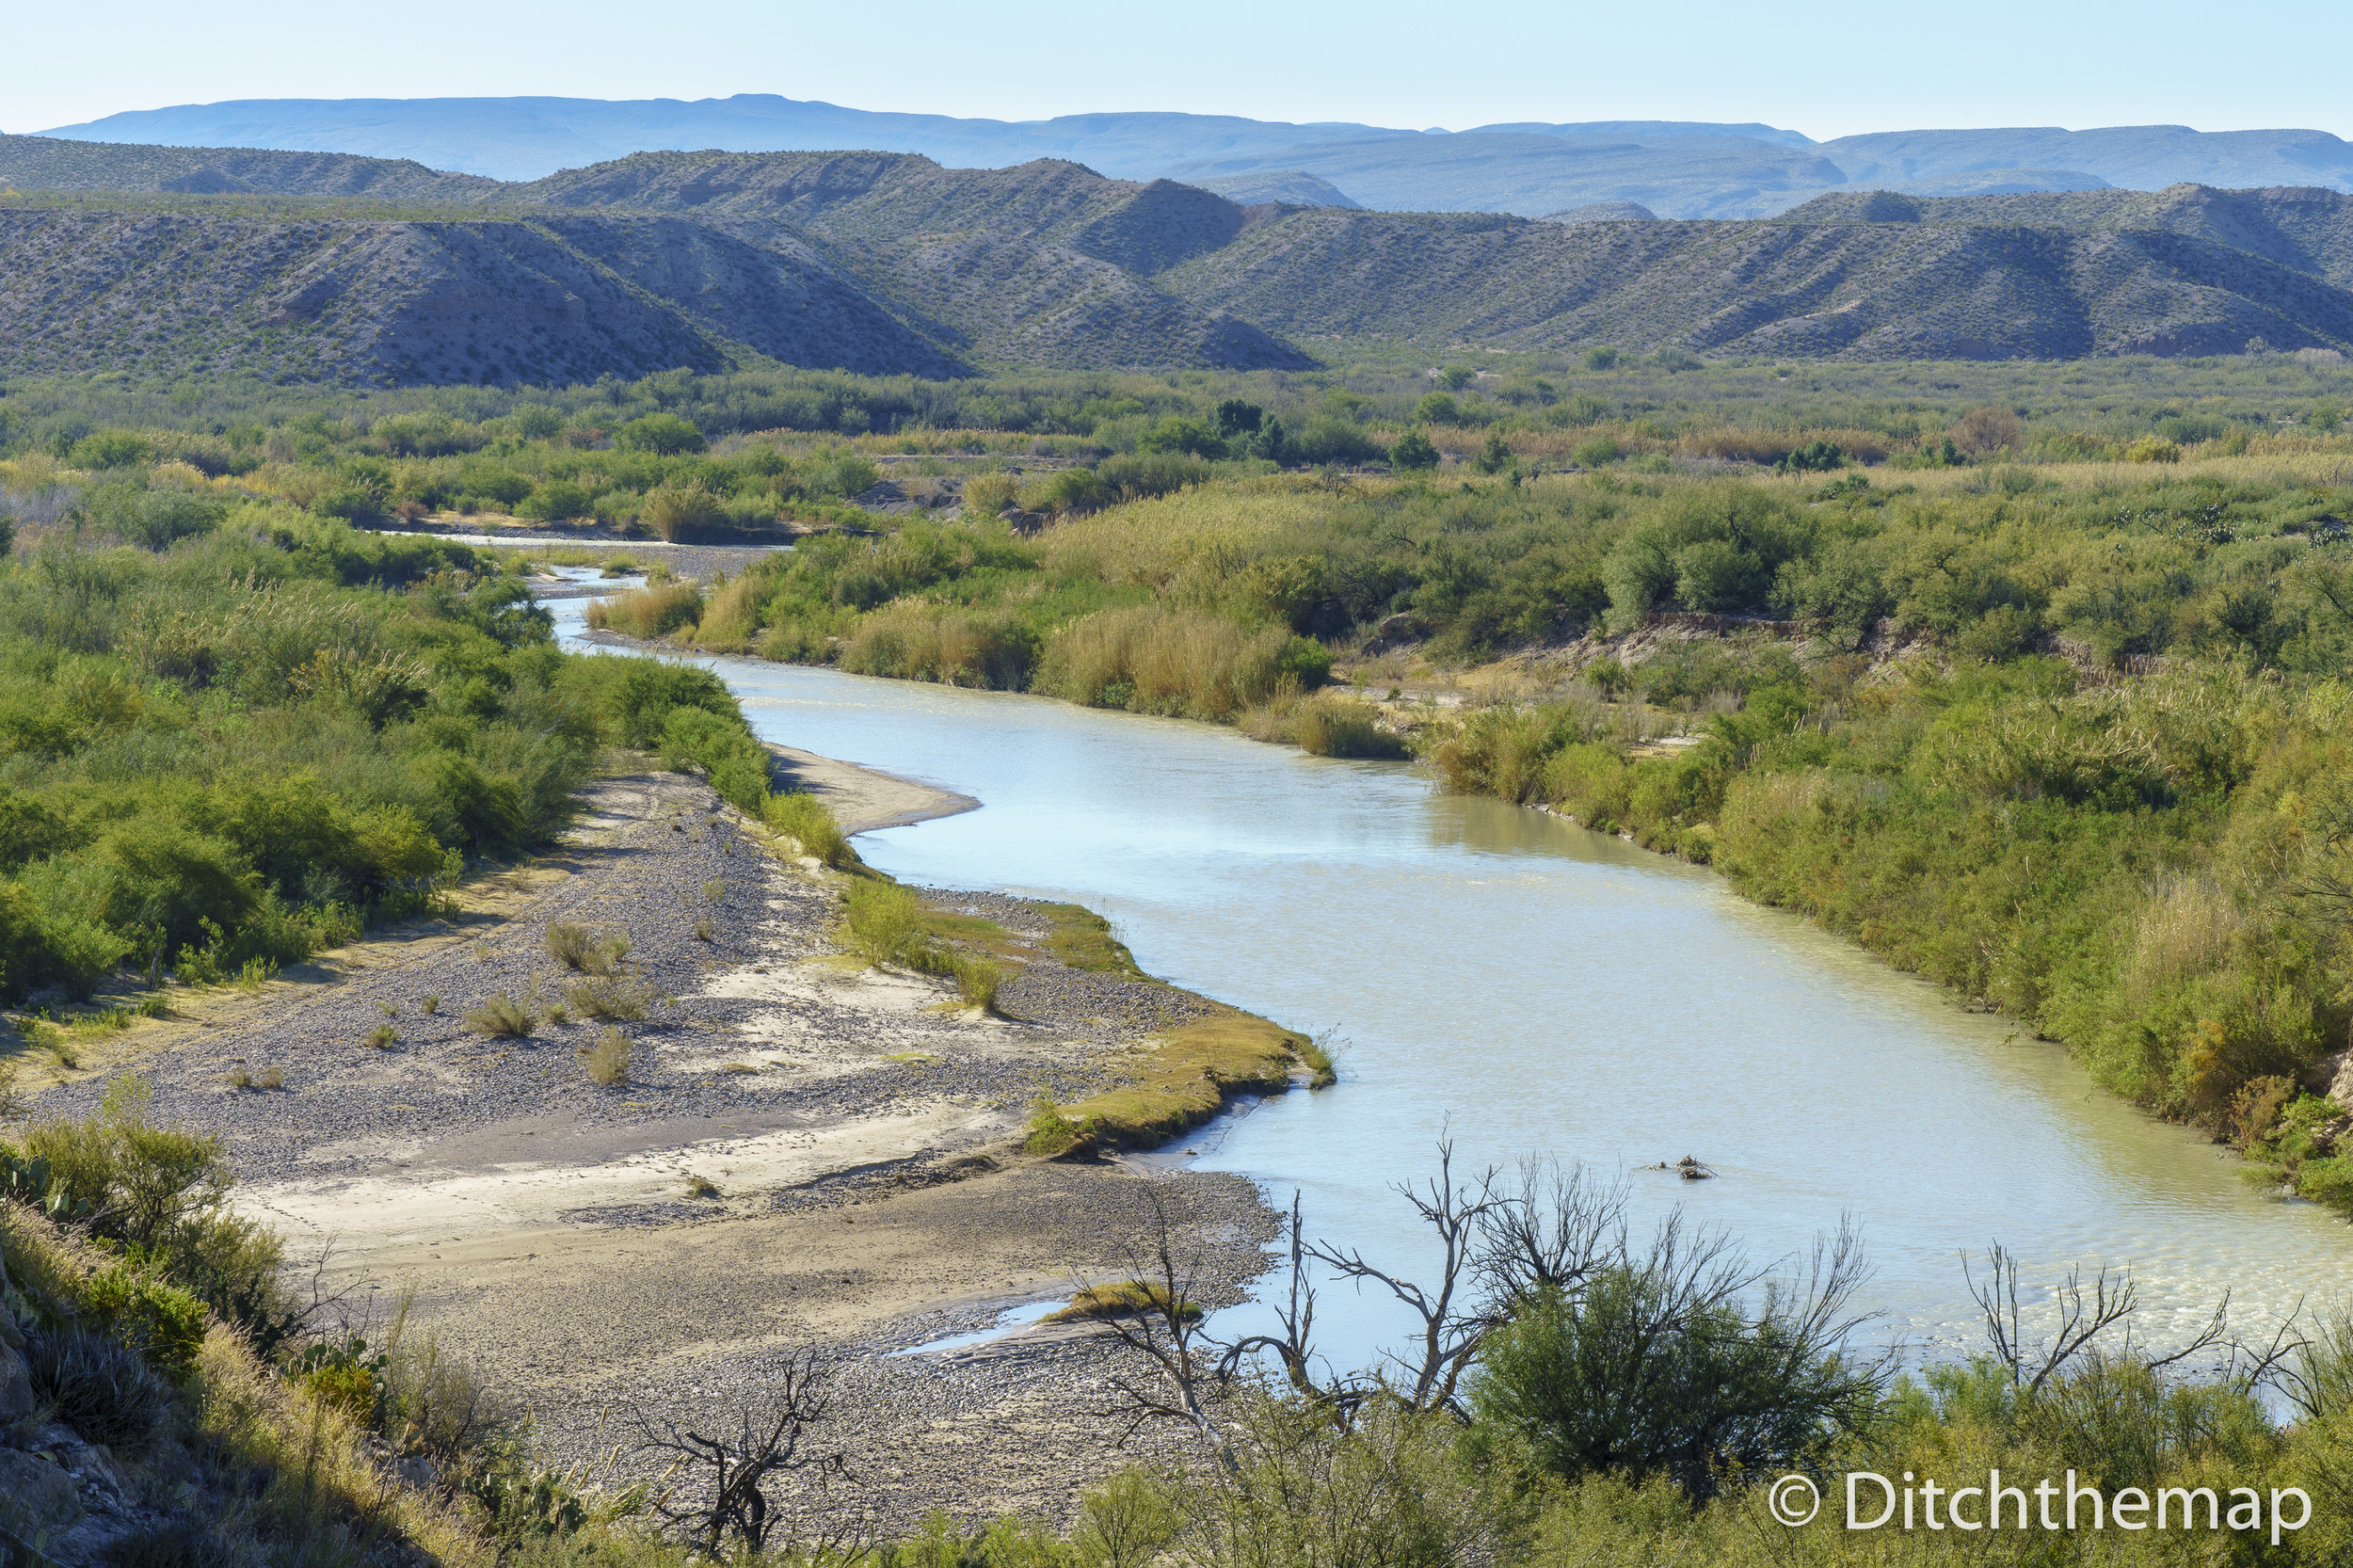 View While Hiking Boquillas Canyon Trail In Big Bend National Park, Texas